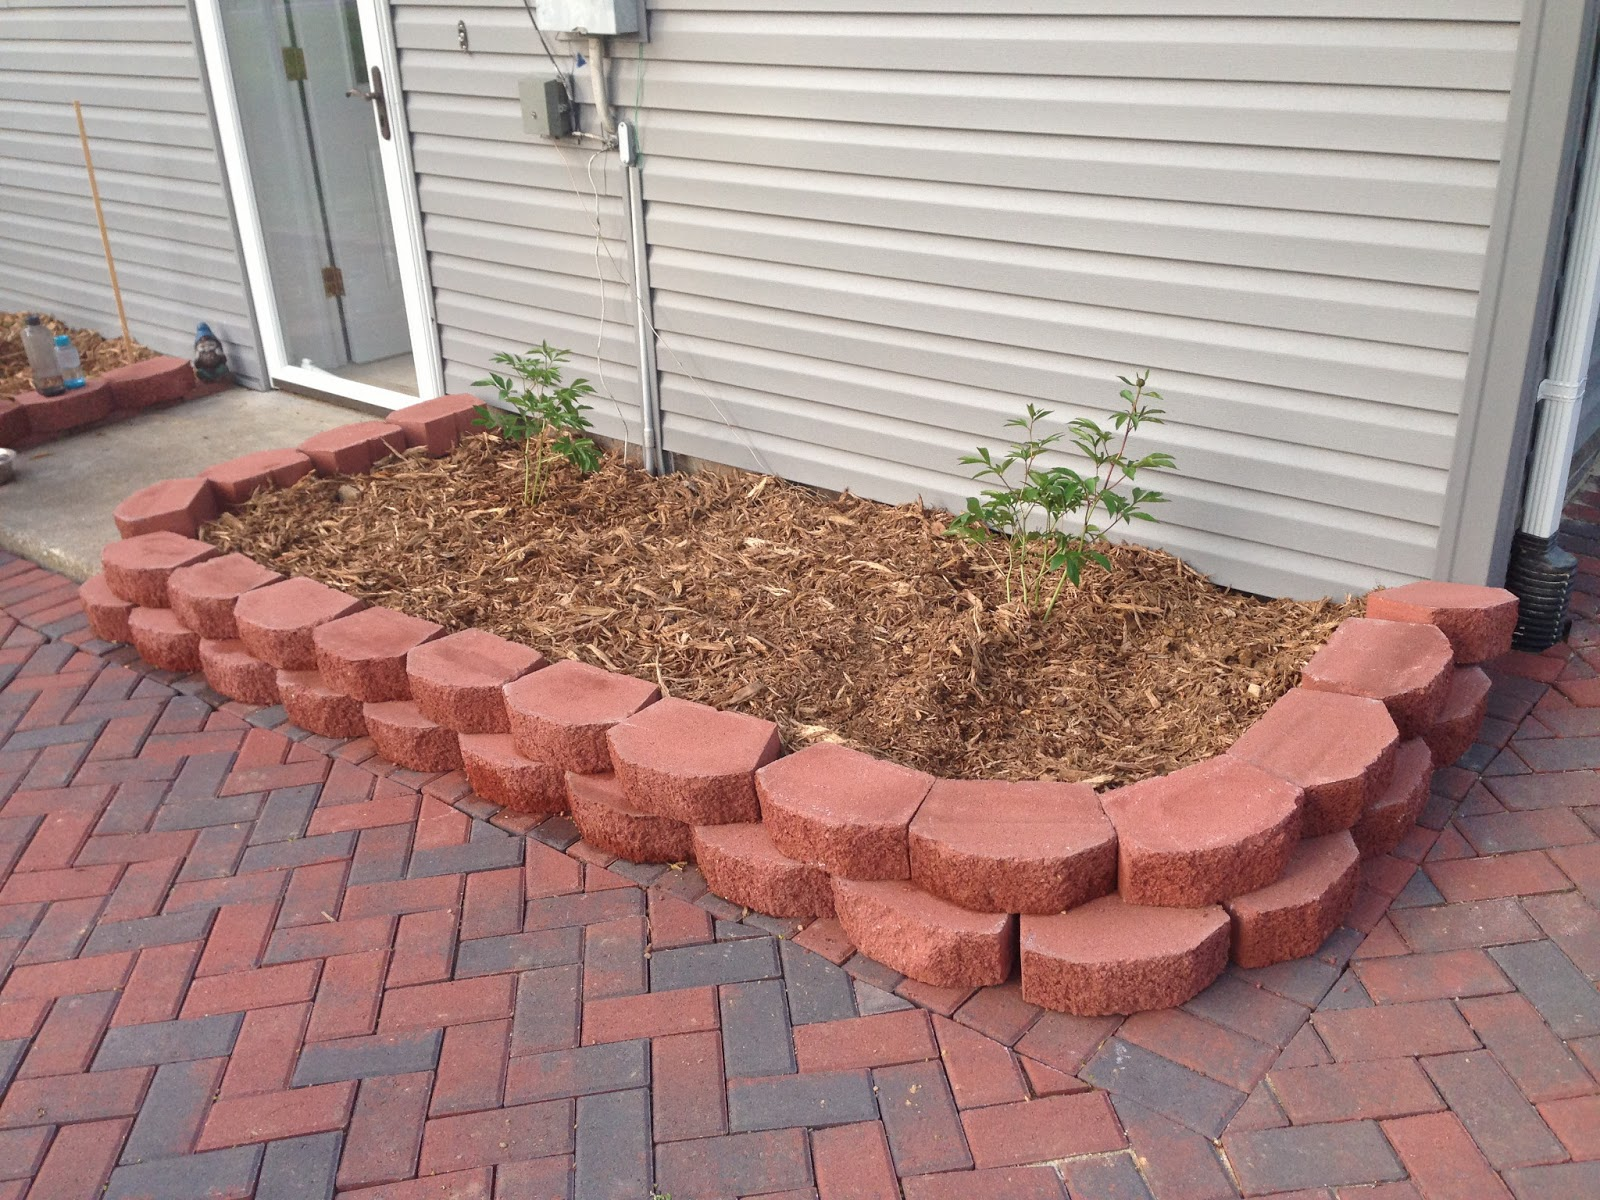 Newlywed Nesters Diy Paver Patio. Patio Com Mt Kisco Ny. Patio Store Fort Wayne. Stone Patio Houston. Patio Builders Visalia Ca. Outdoor Patio Yaletown. Outdoor Patio Electric Heaters Best. Concrete Patio Myrtle Beach. Outdoor Patio Kalamazoo